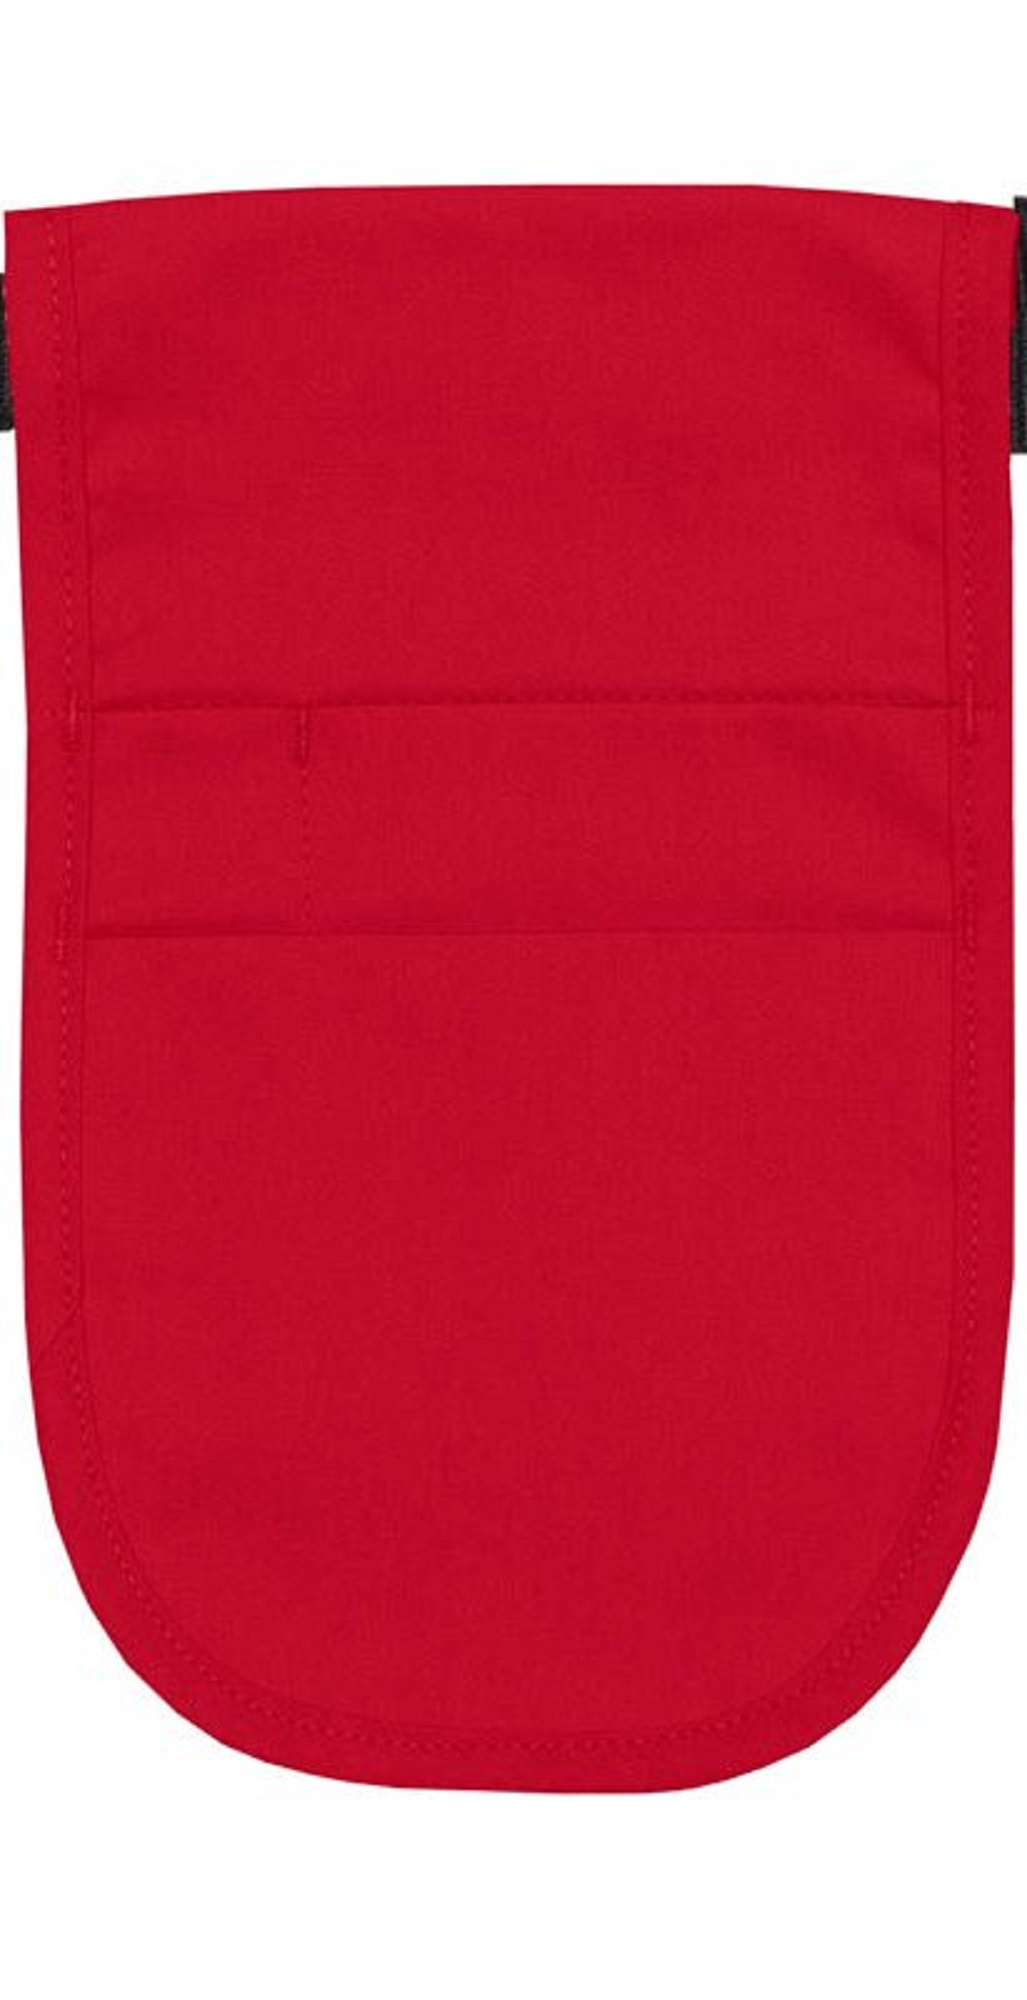 Style 152 Professional Money Pouch Aprons with Attached Belt - Red